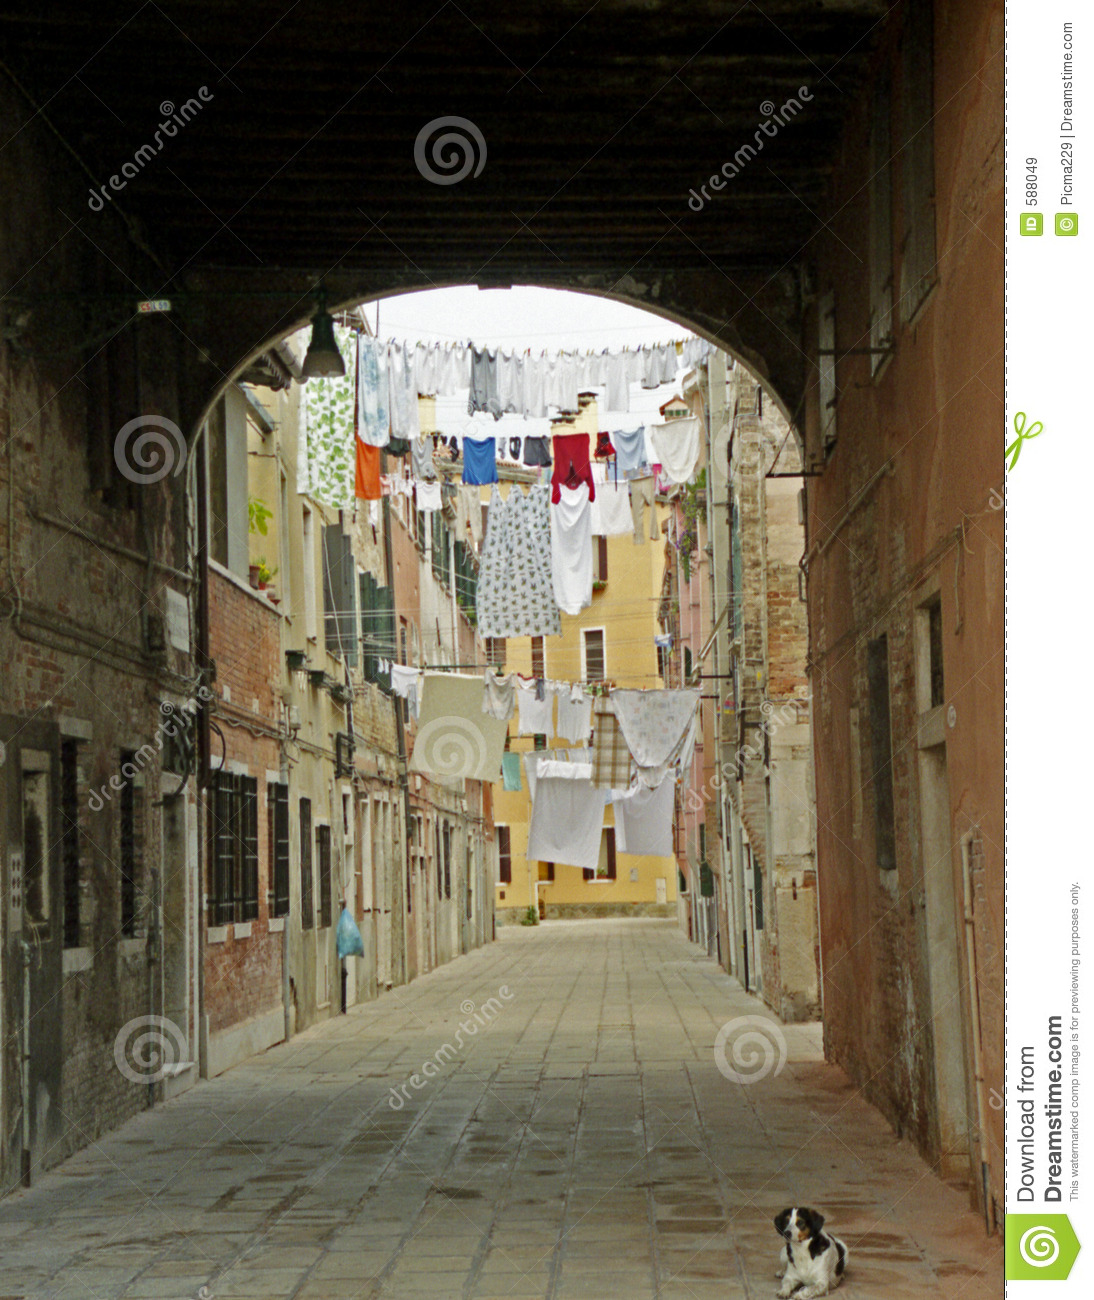 clothes lines over the road royalty free stock images image 588049